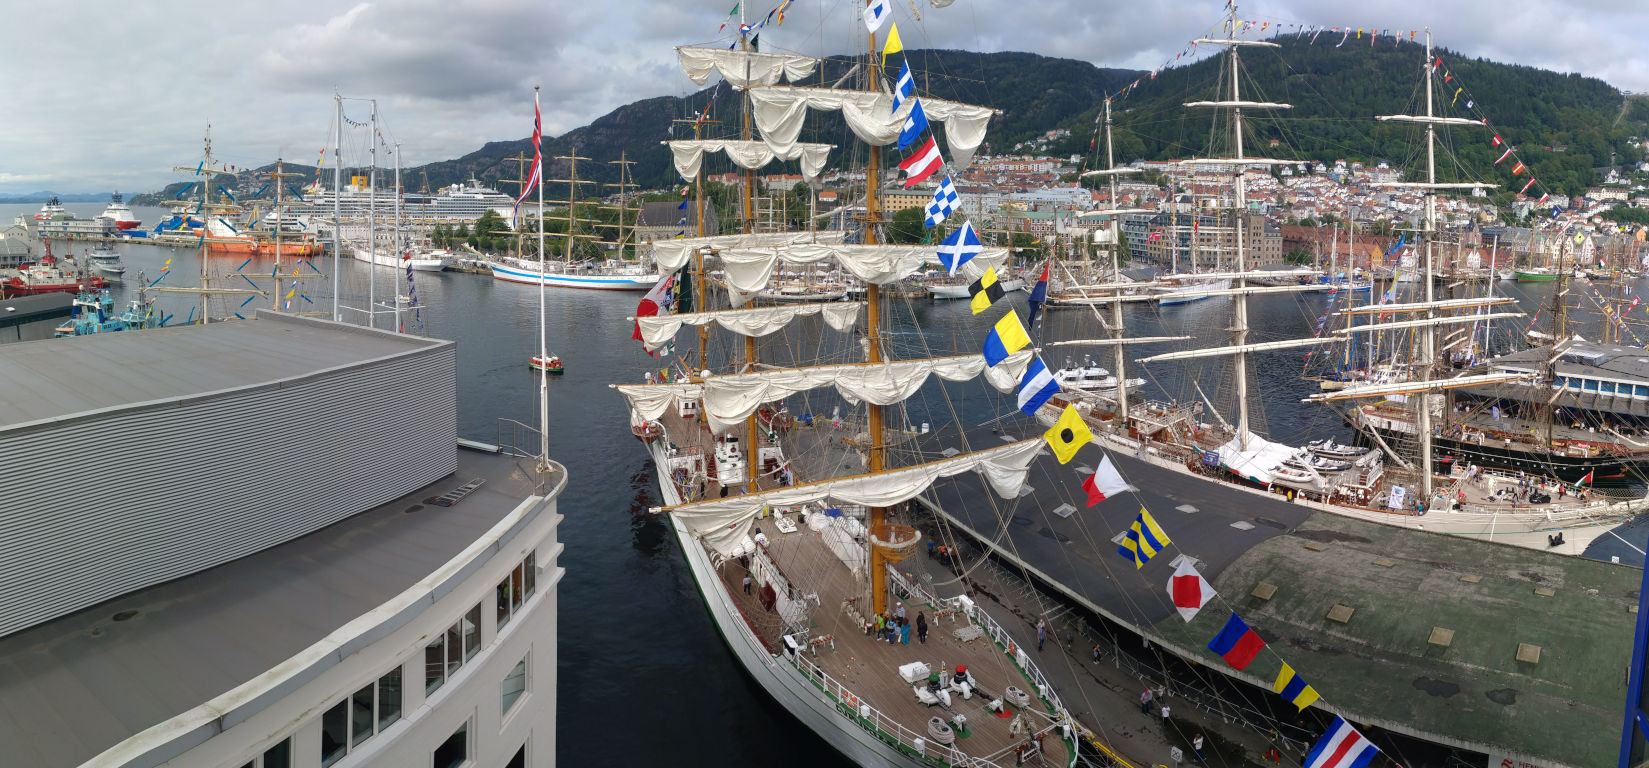 The Tall Ships Races 2019